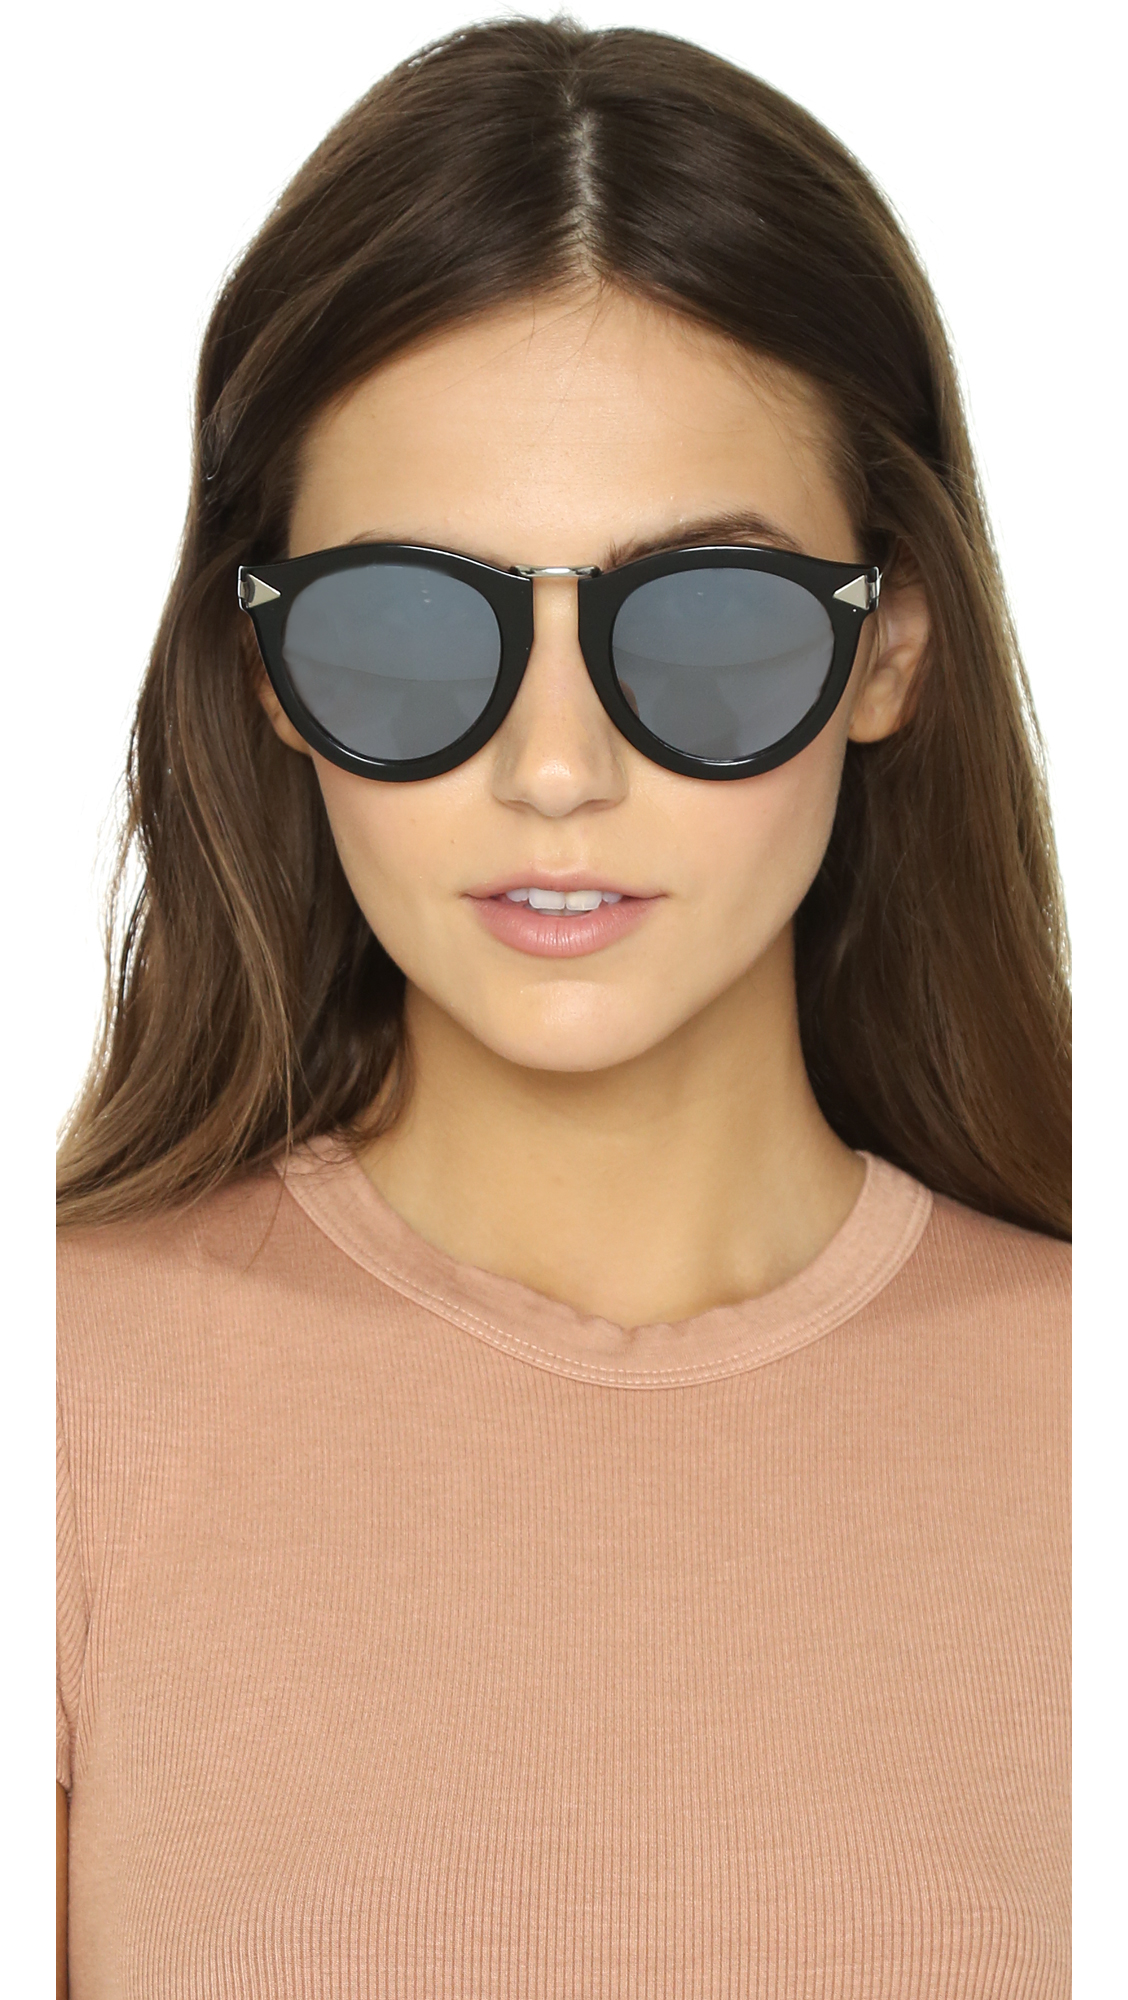 35247d6c8278 Karen Walker Superstars Harvest Sunglasses in Black - Lyst